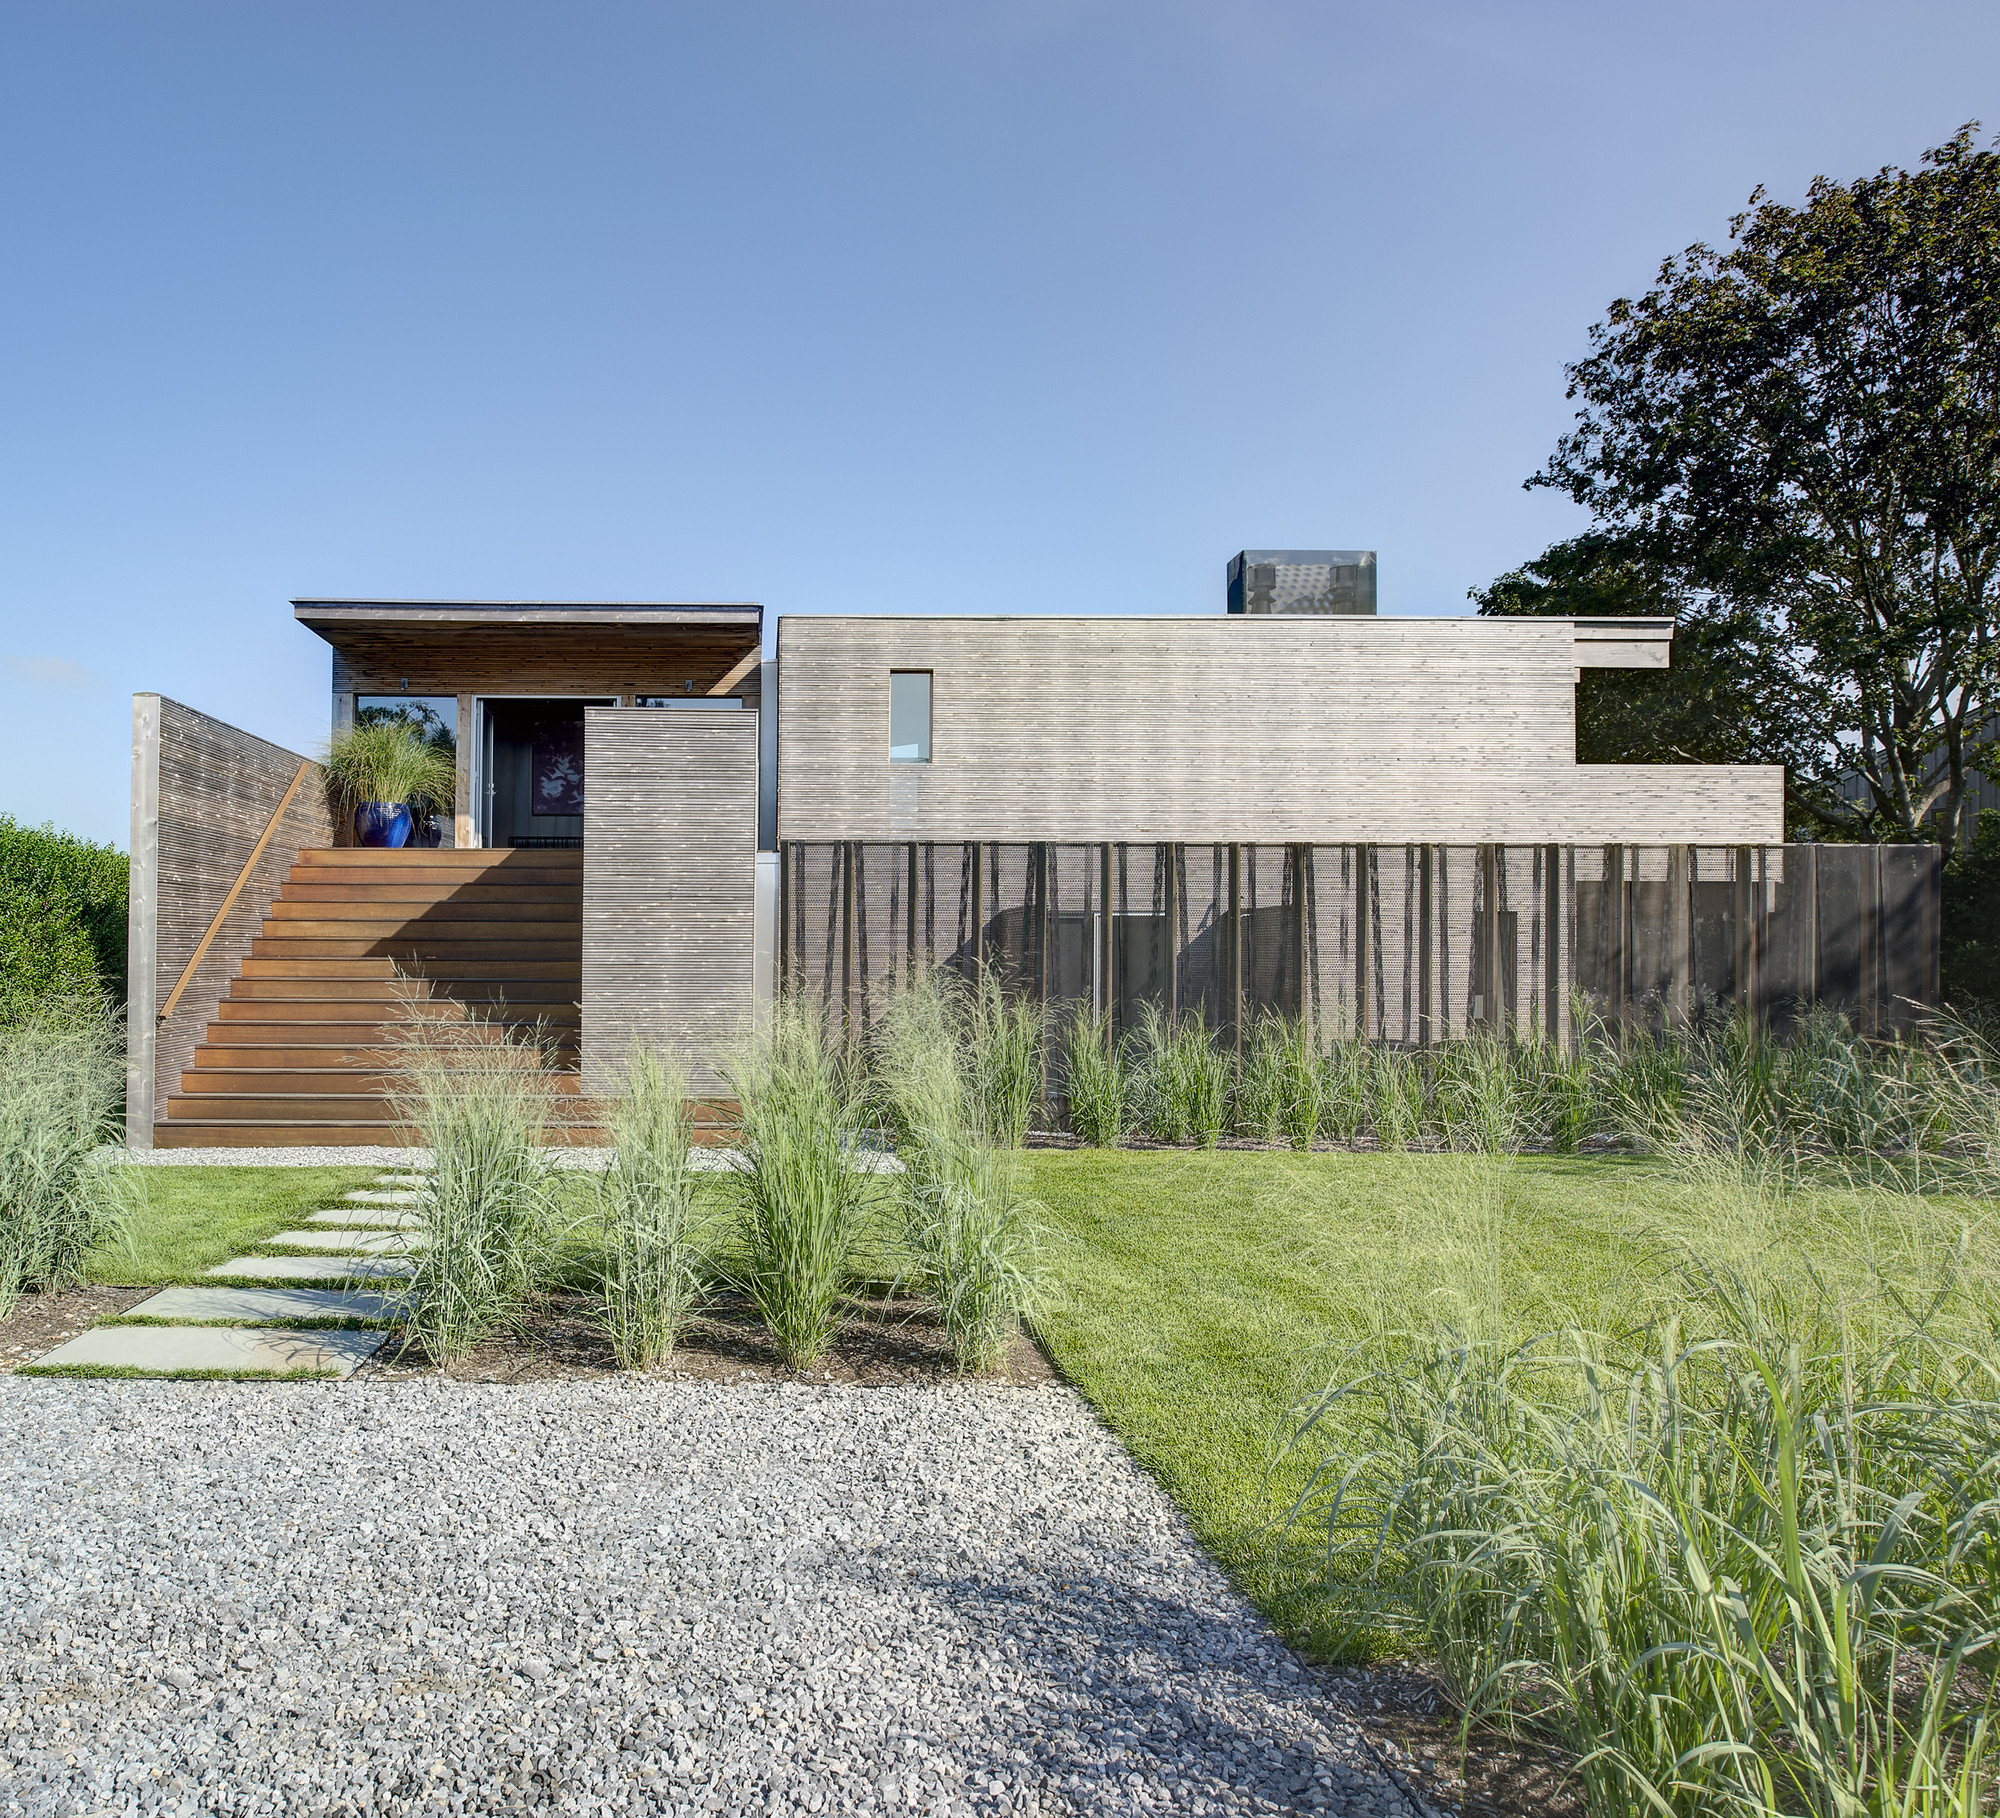 Far Pond / Bates Masi Architects, Courtesy of Bates Masi Architects